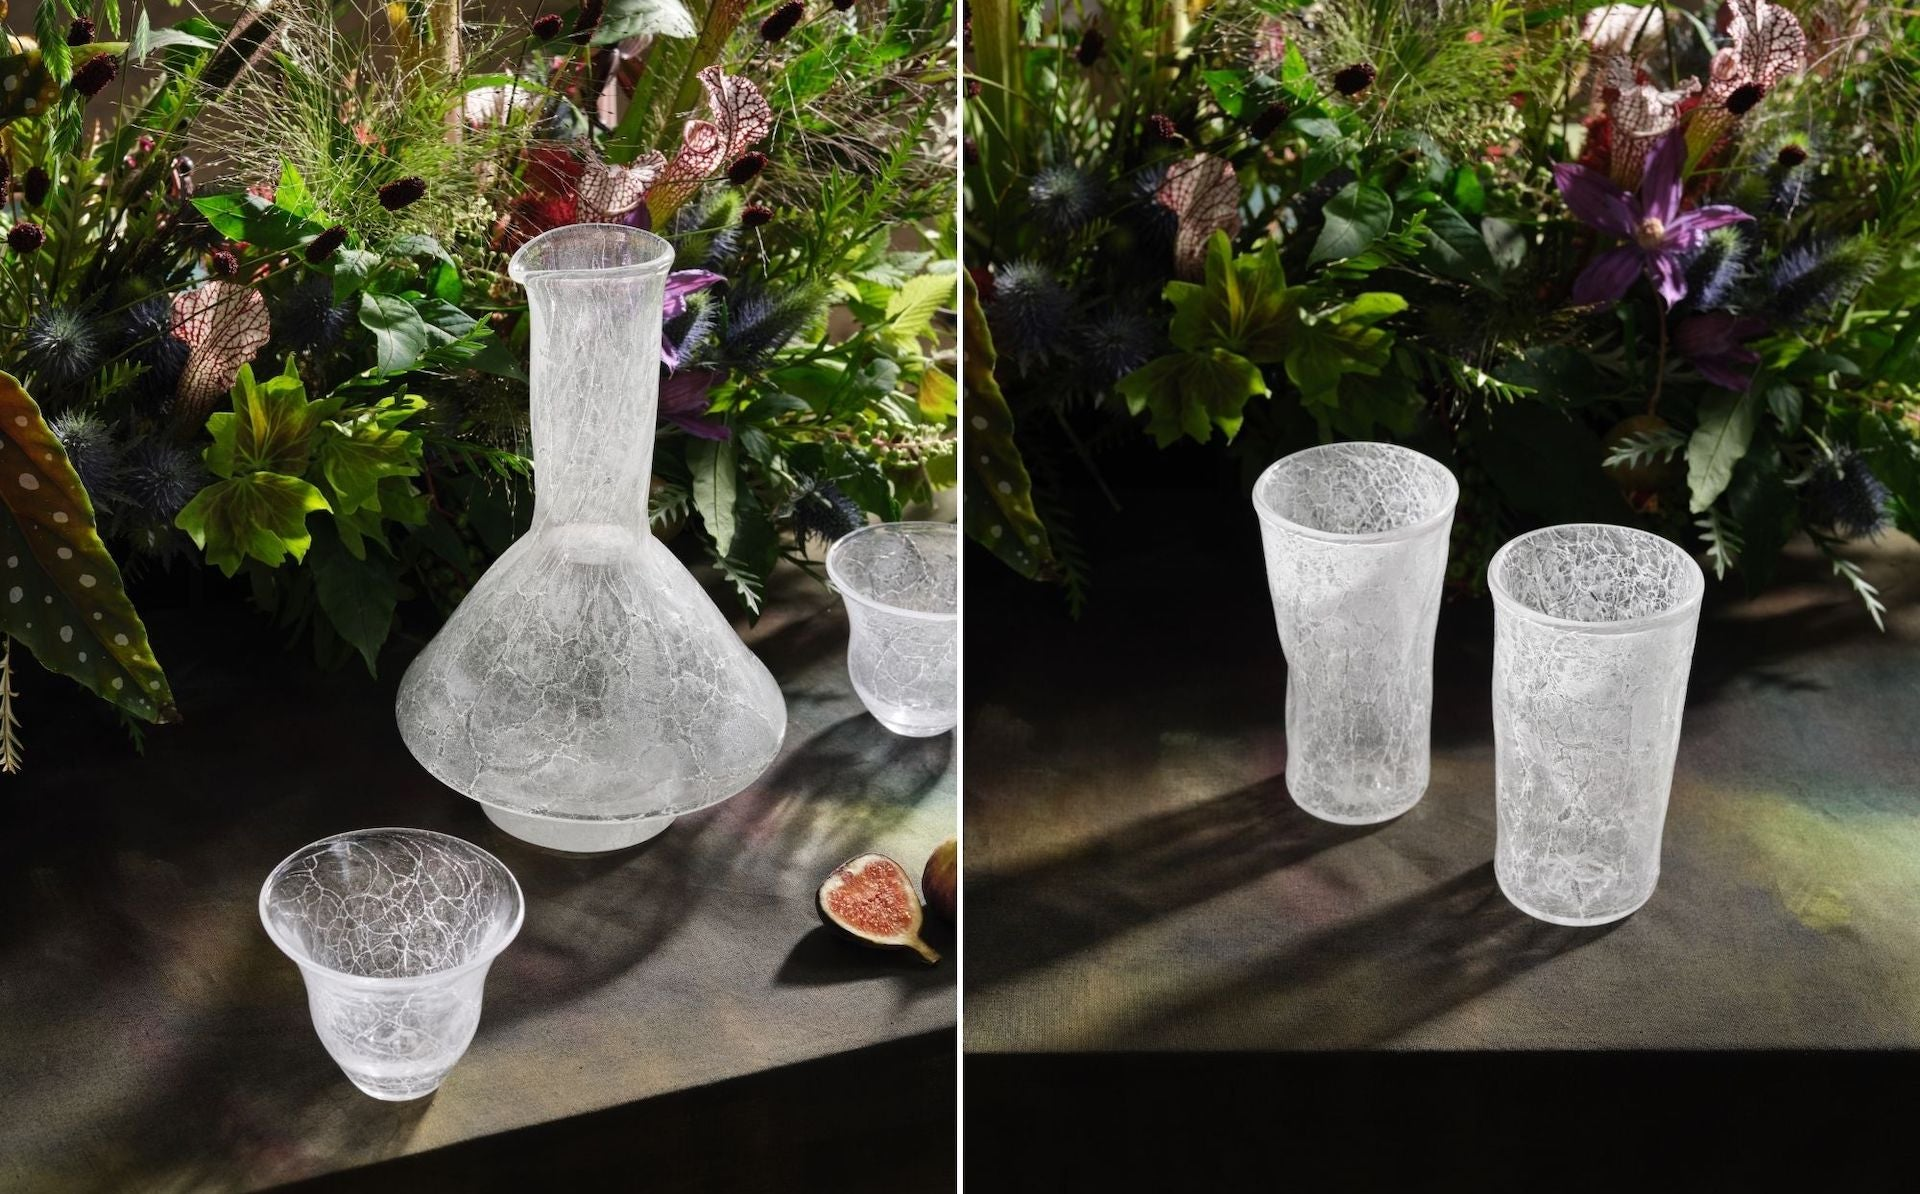 Glassware by Michiko Sakano for The Feast. Photos © DM/BX